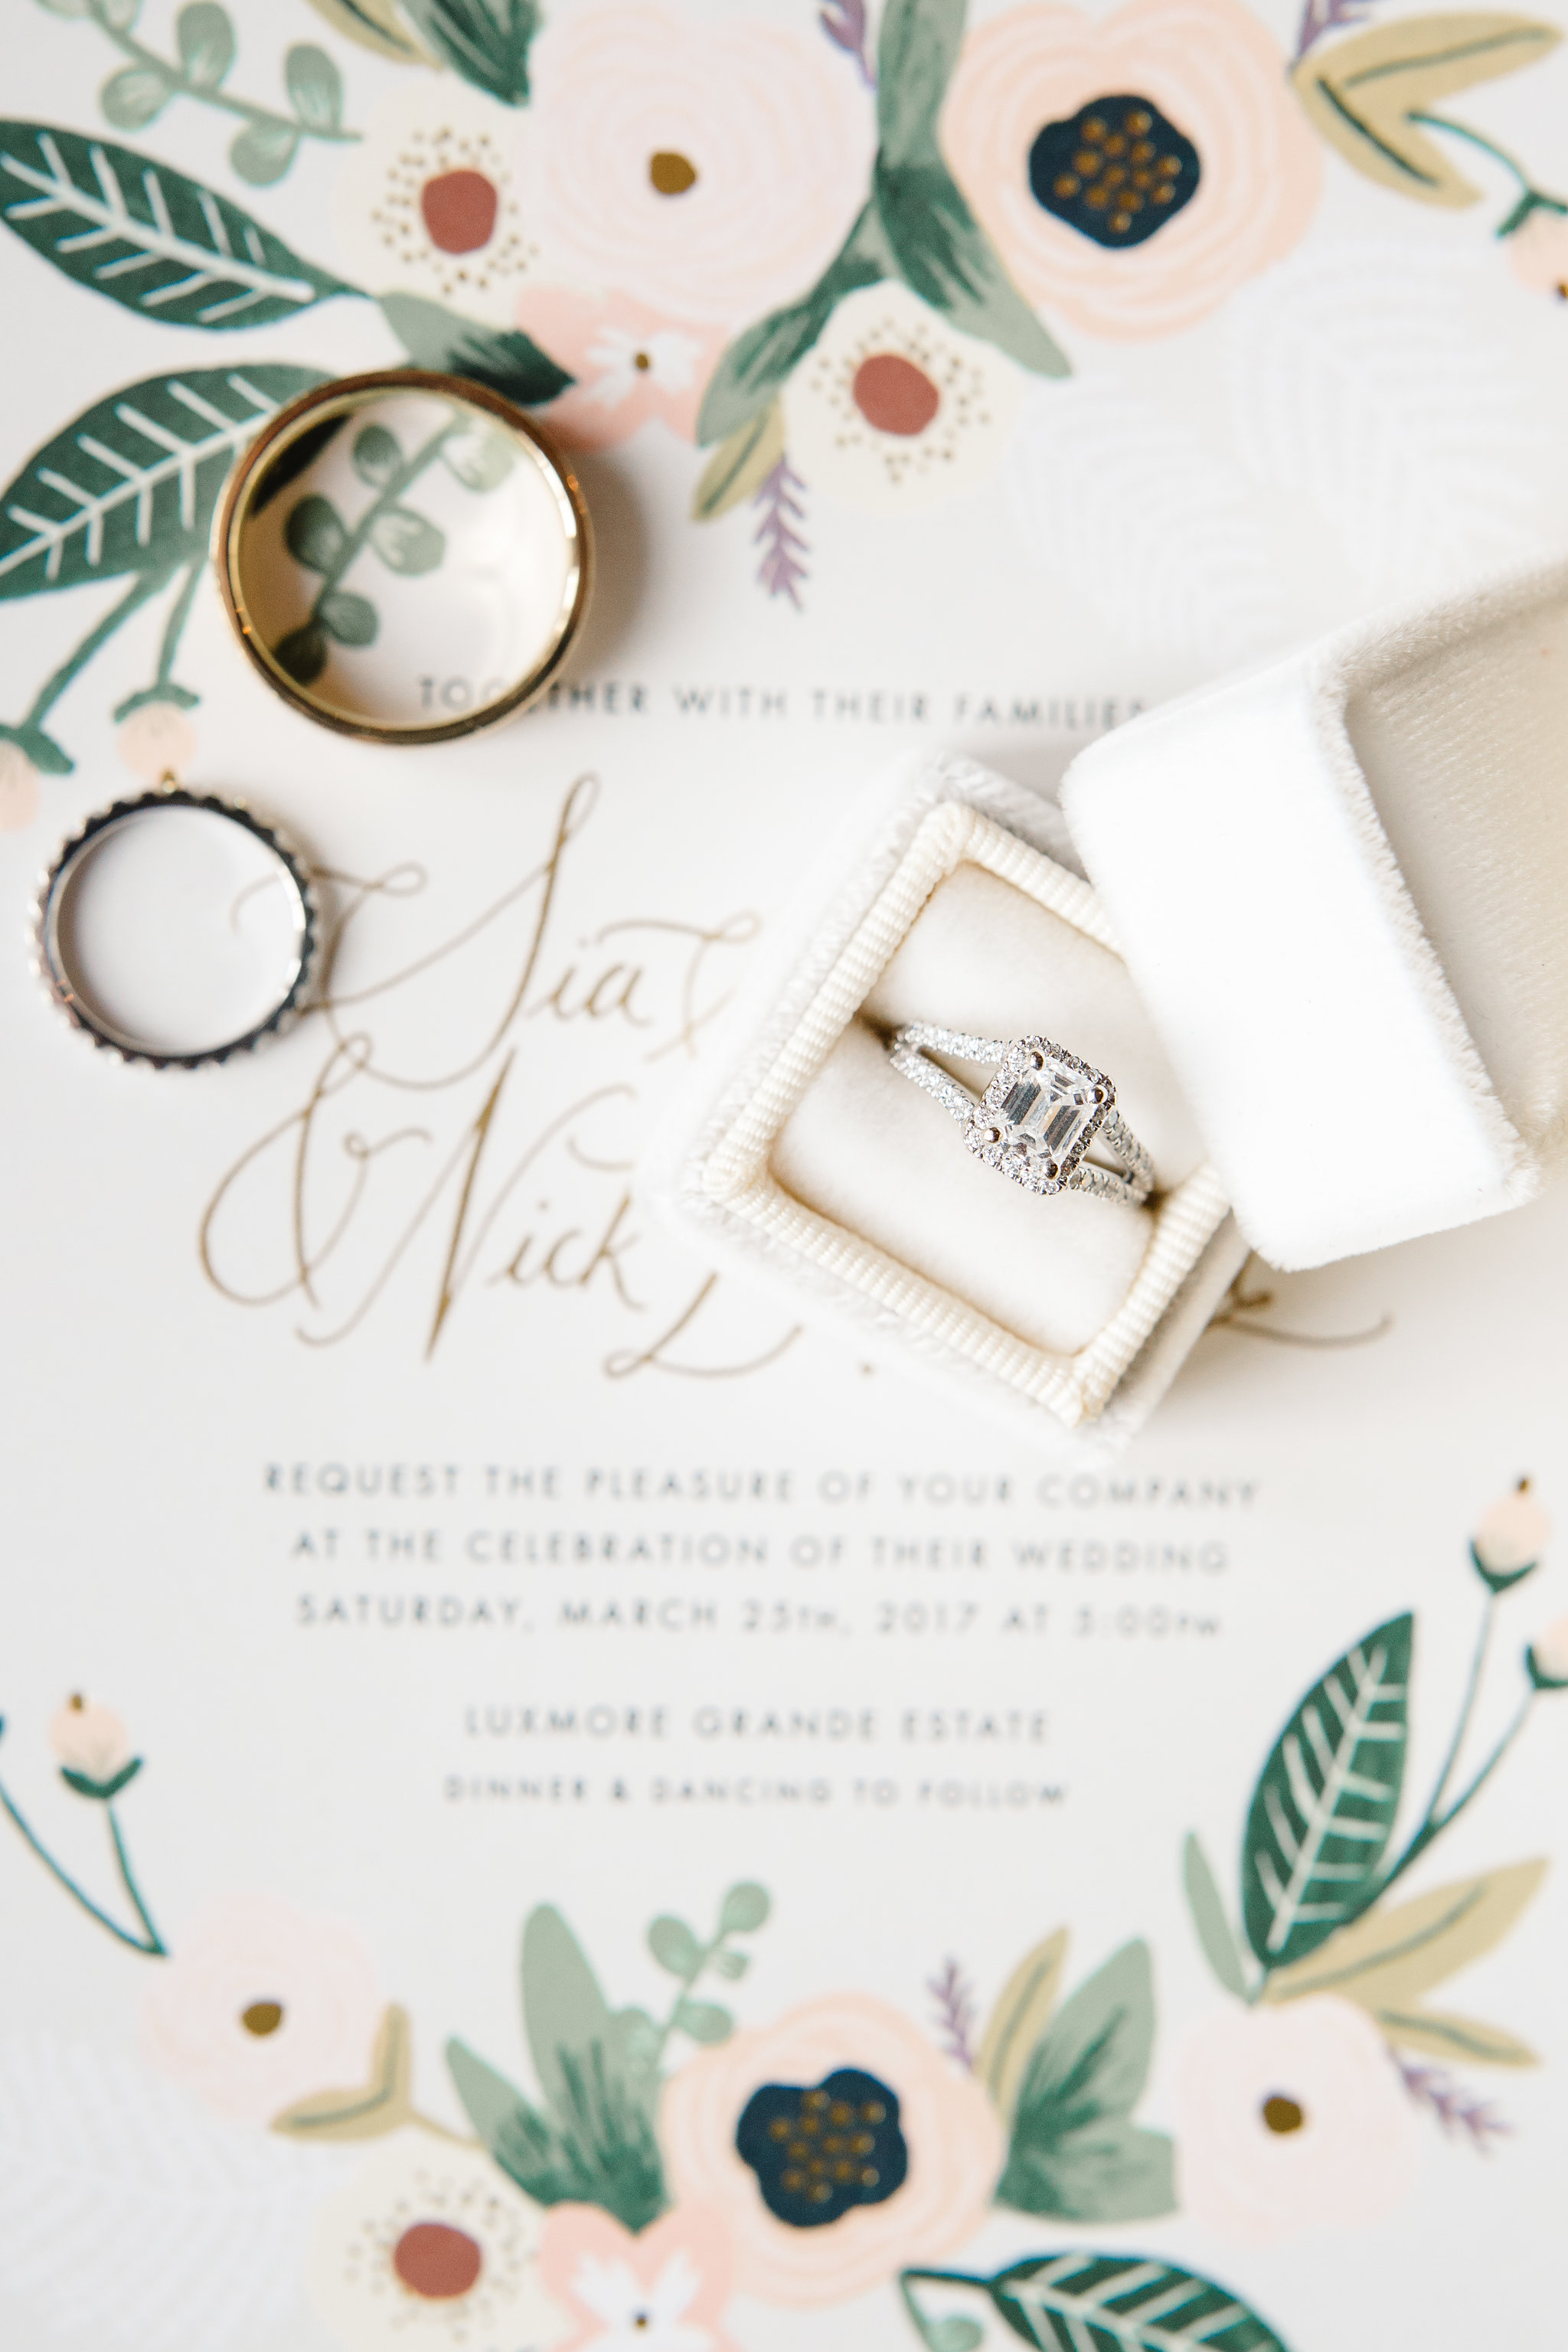 Rifle Paper Co. Botanical Wedding Invitations and Wedding Rings  Orlando Wedding Planner Blue Ribbon Weddings  Orlando Wedding Photographer JP Pratt Photography  Wedding Ceremony & Reception at Luxmore Grande Estate